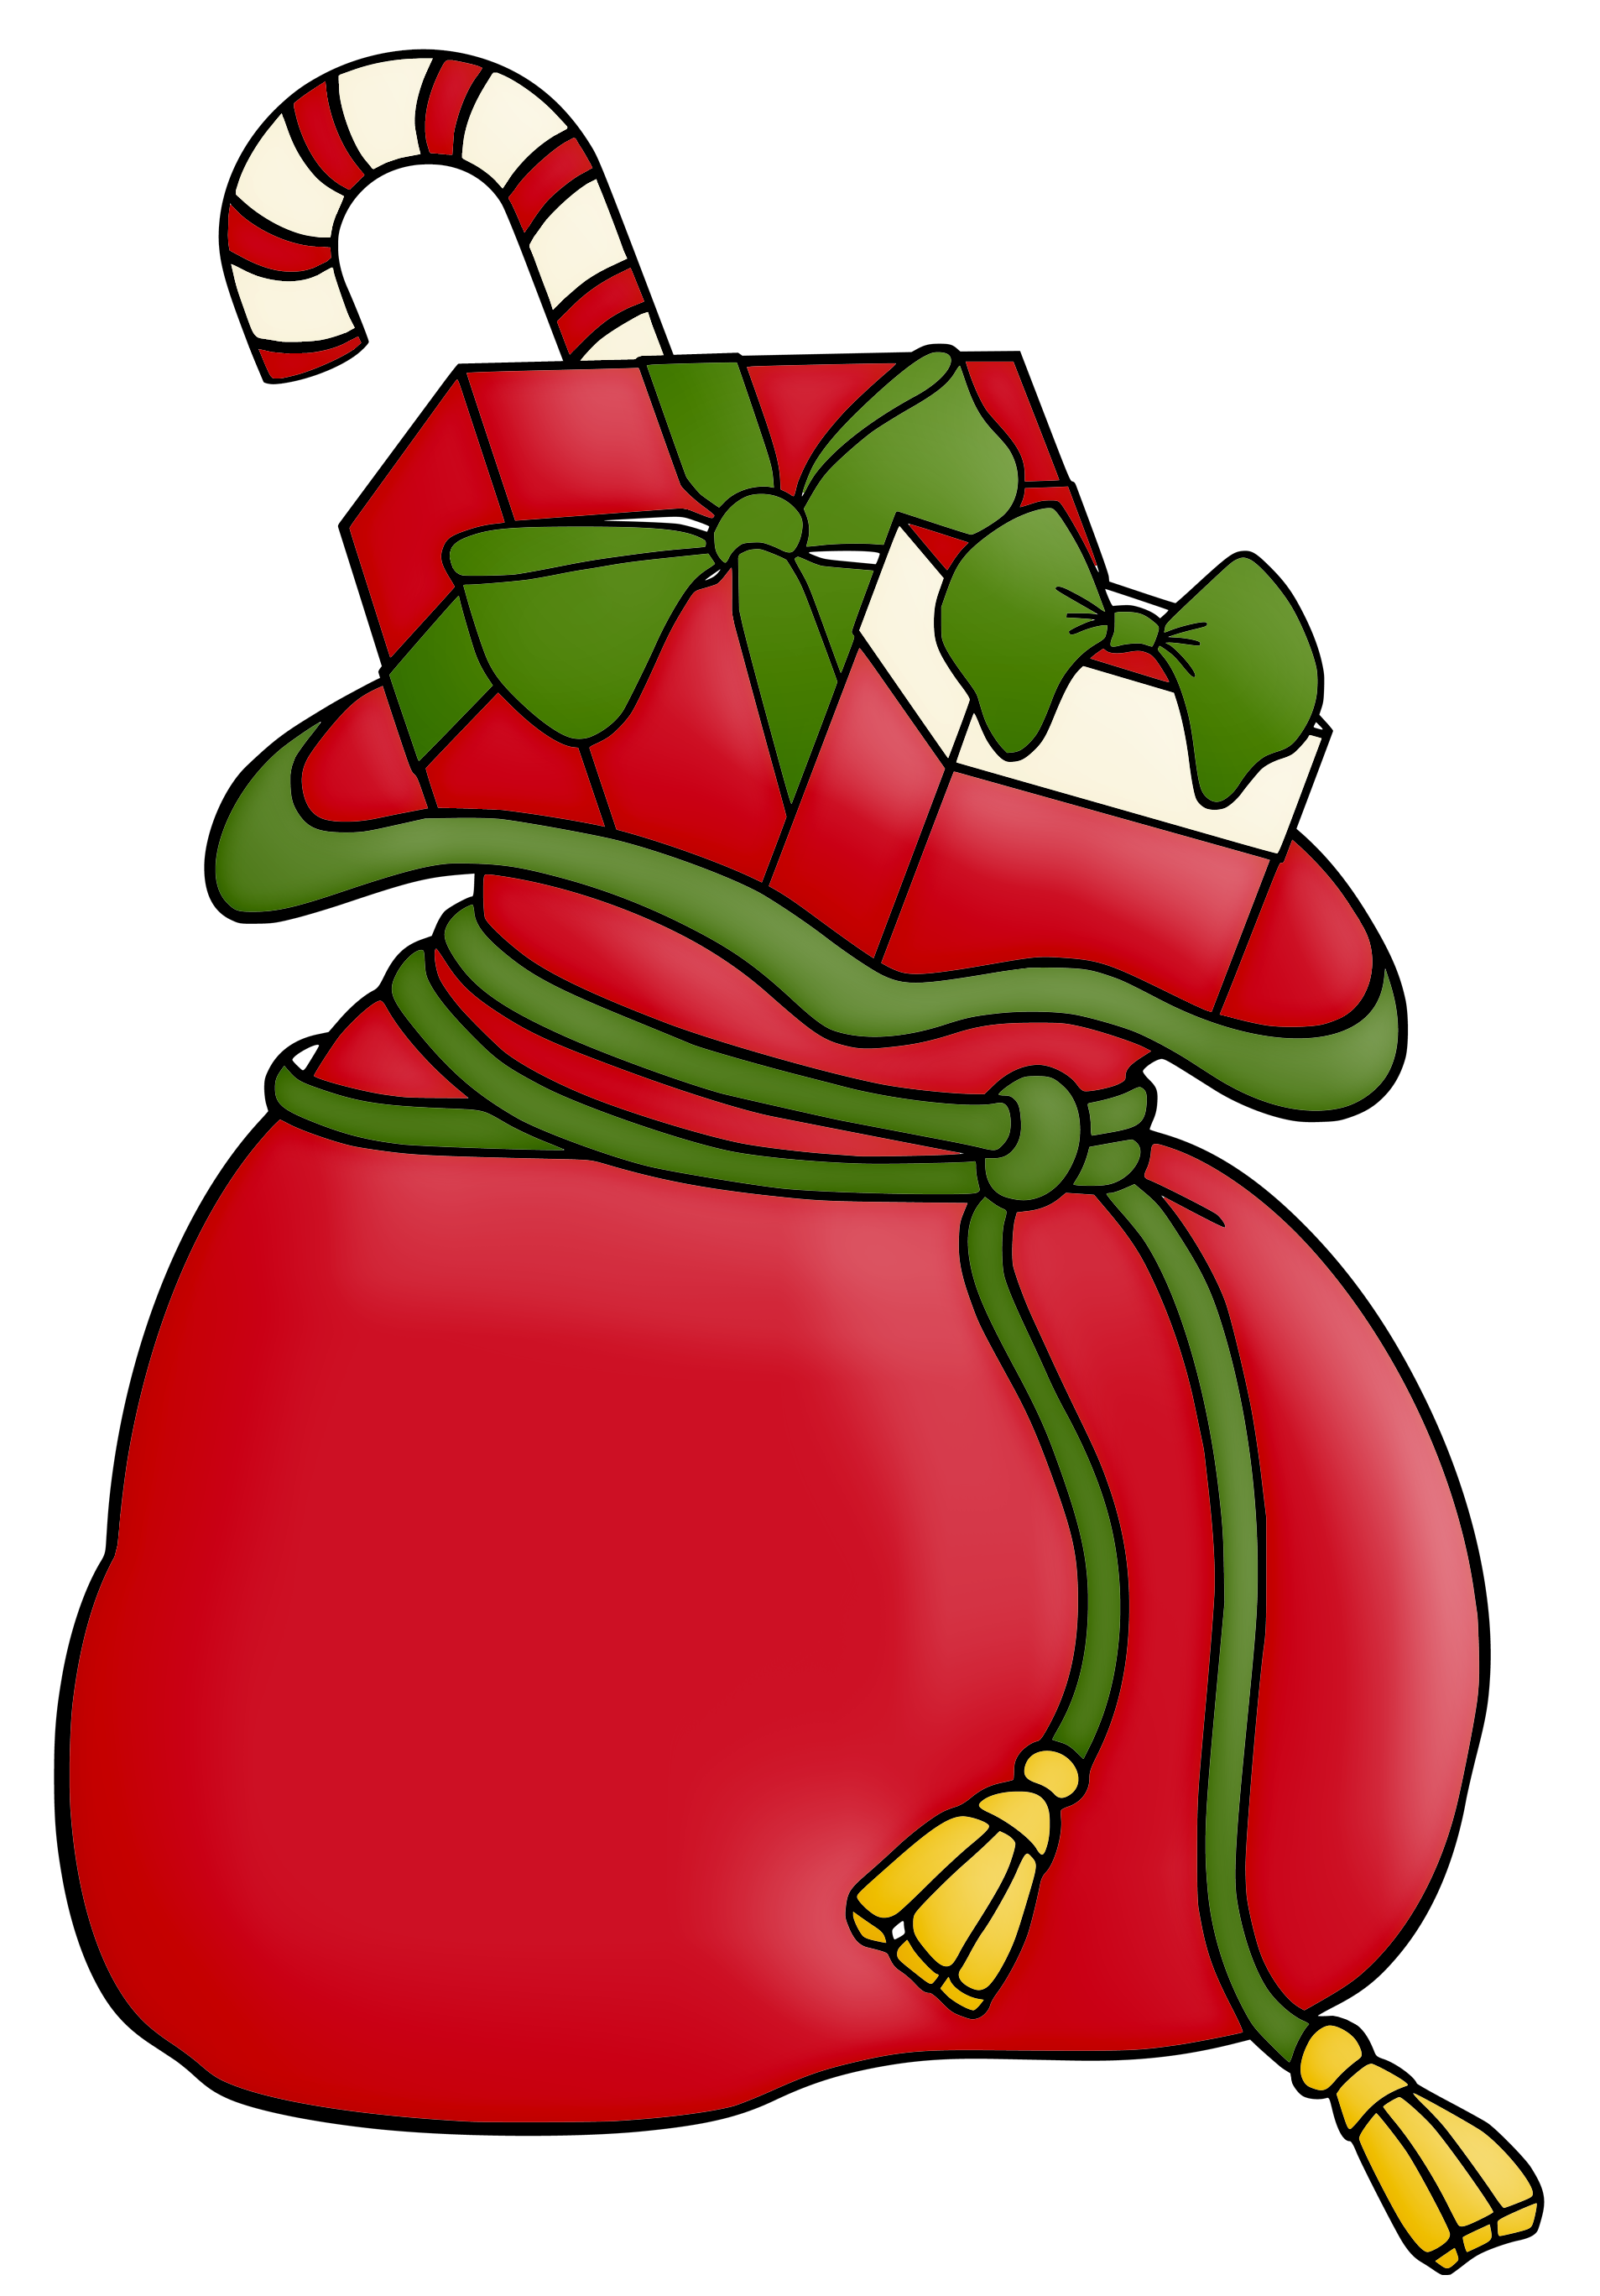 Sack clip art find. 1 clipart christmas image free download